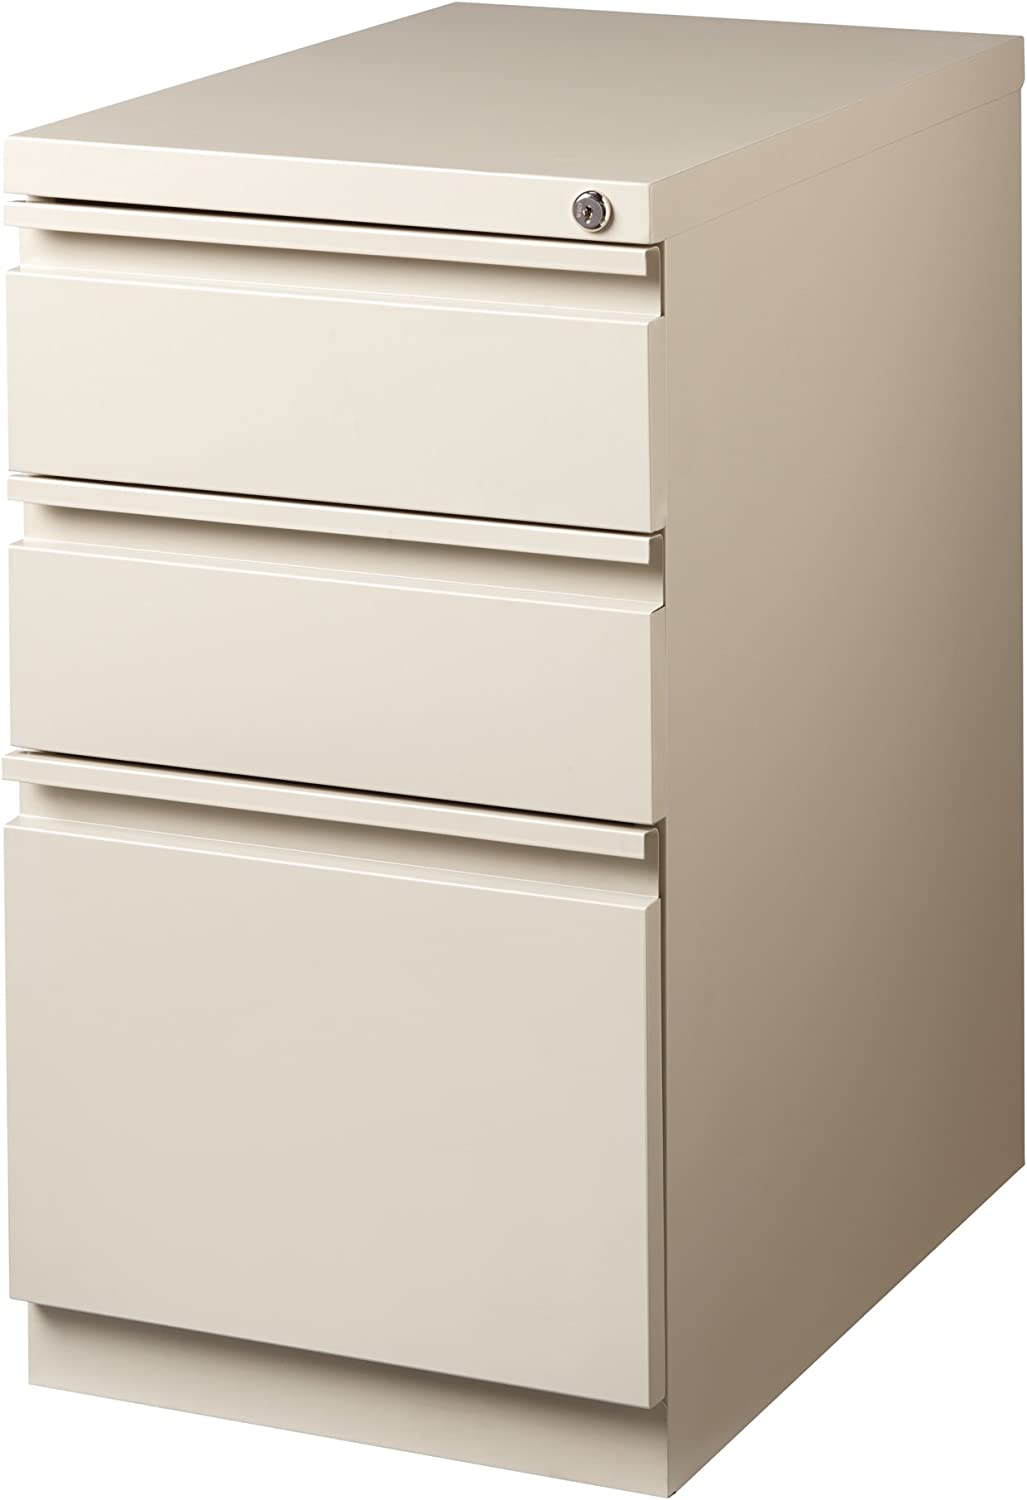 "Office Dimensions Commercial Grade 33232"" Deep Mobile Pedestal File Cabinet, 332  Drawers (32 Storage, 32 File), Putty"